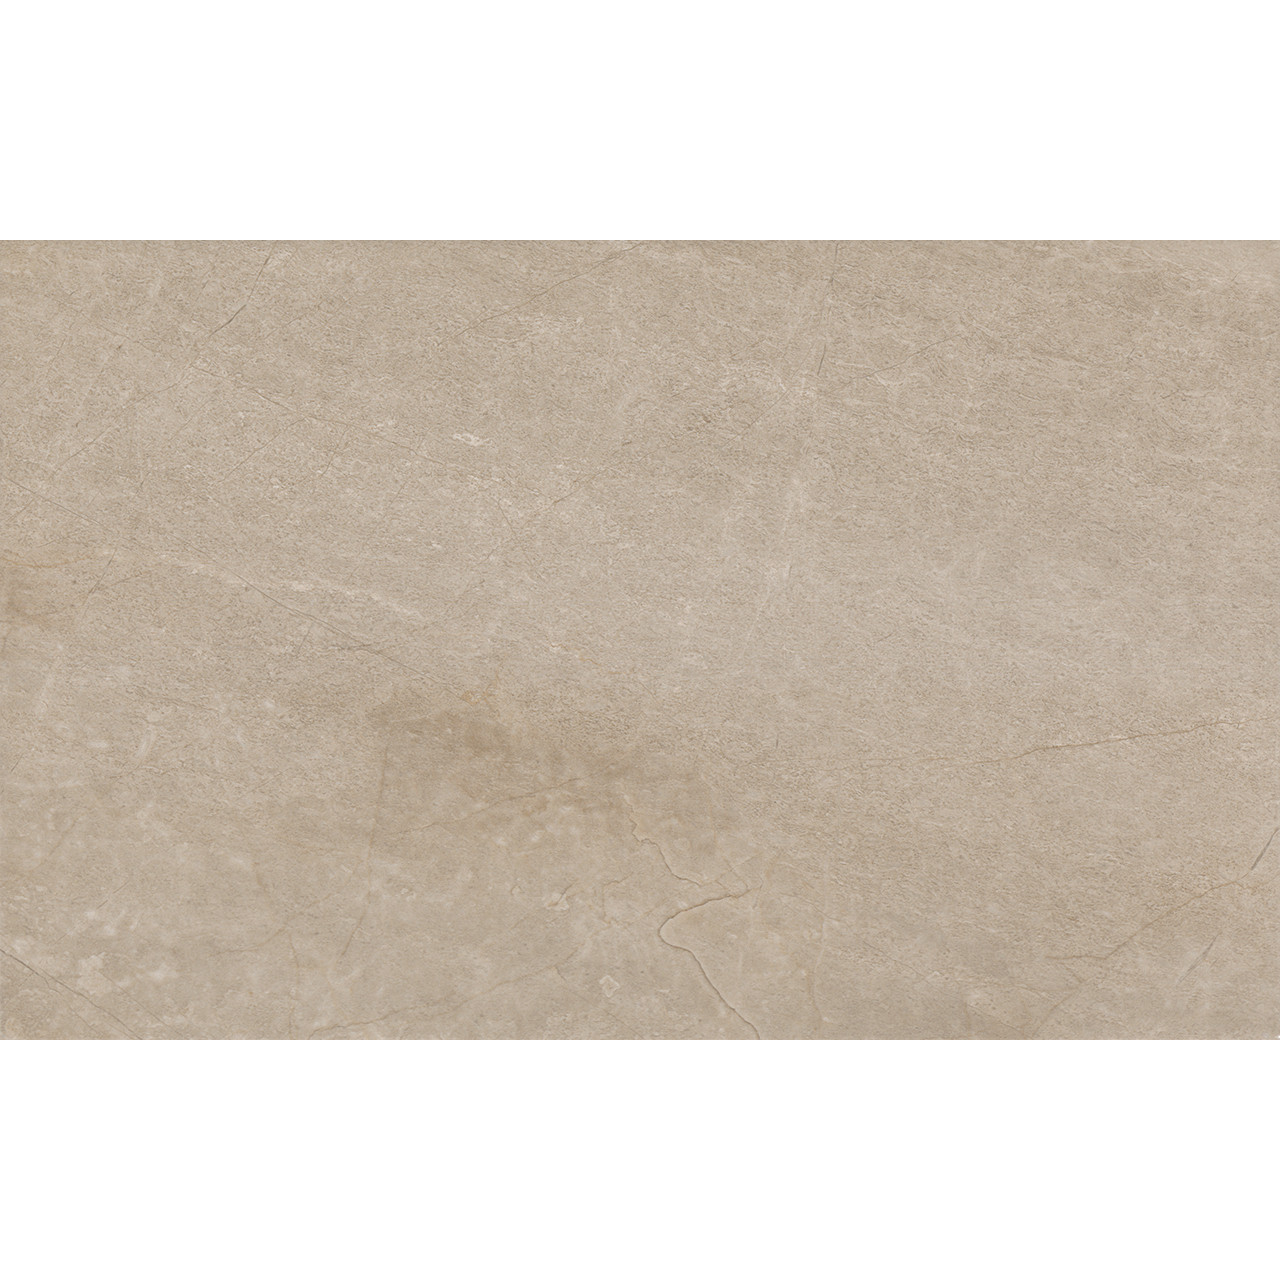 Crema Dorsia Dark 25x50 Ceramic Tile